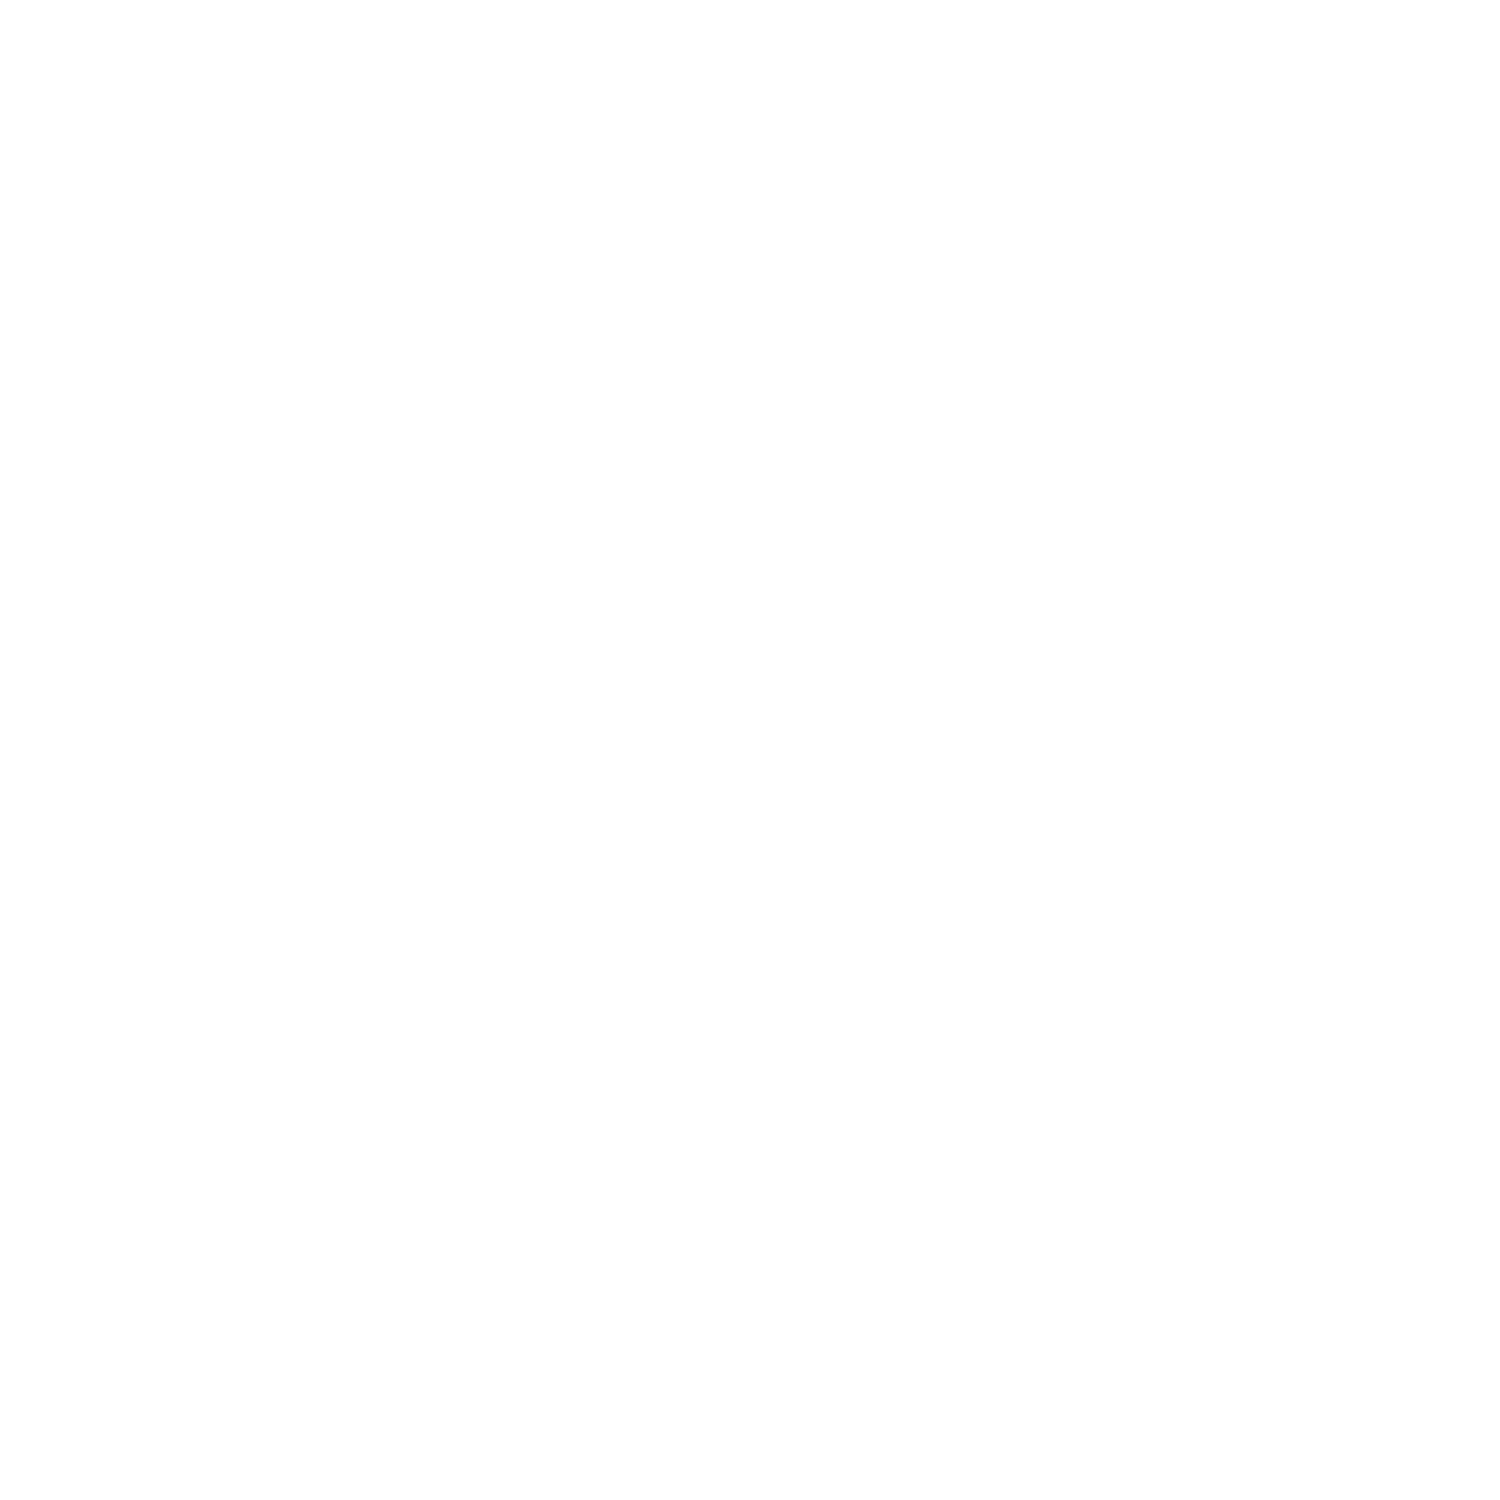 South Asian Film Festival Of America